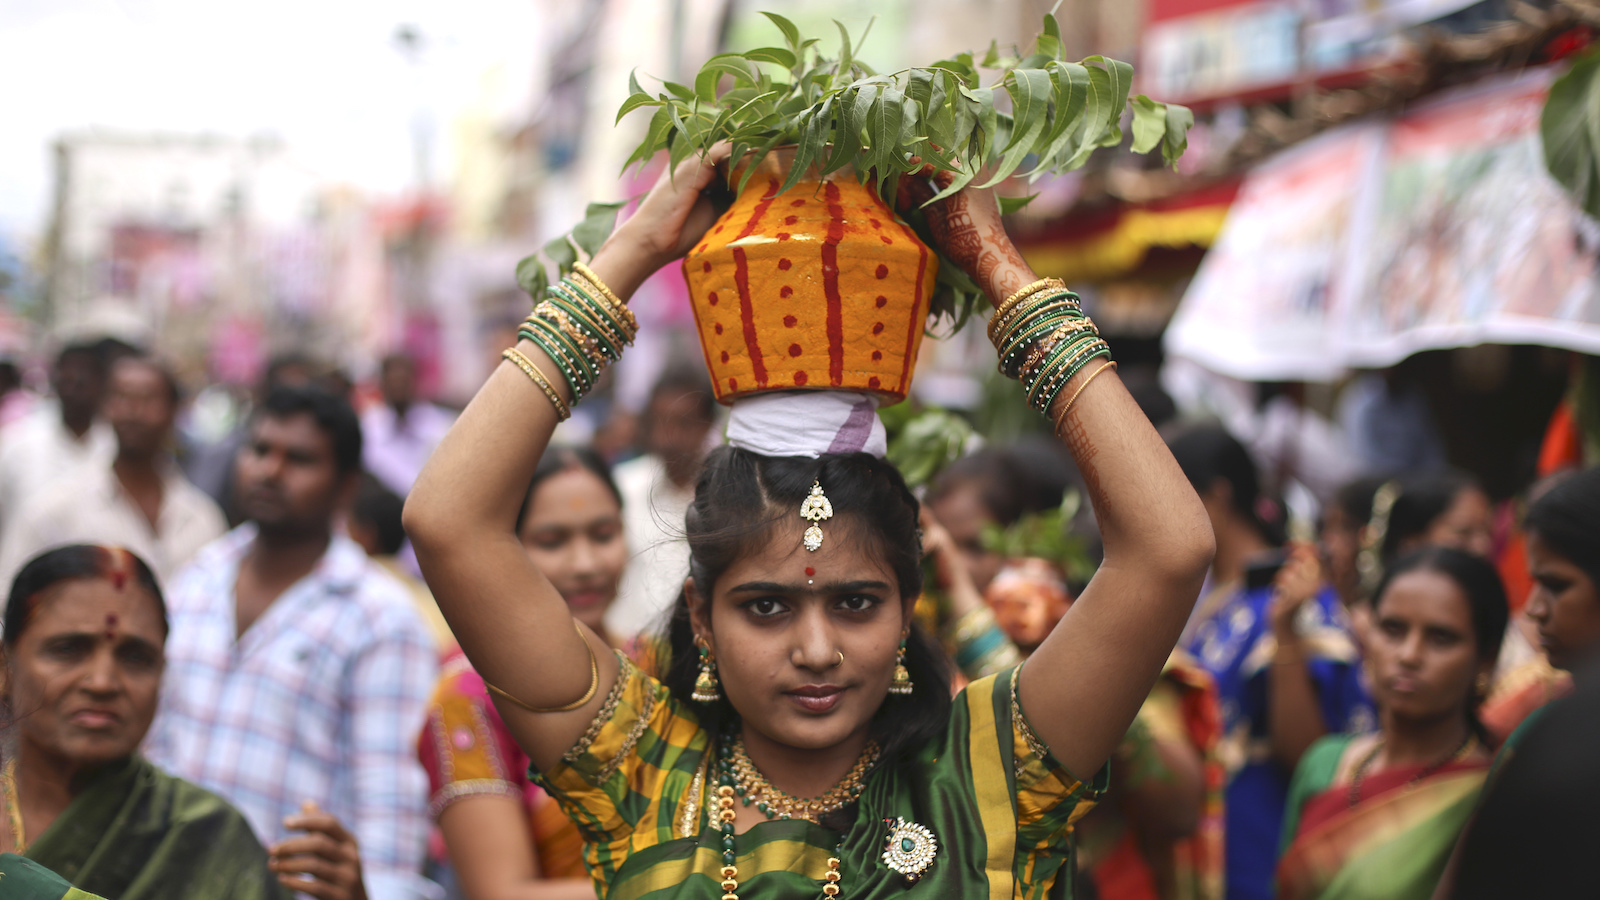 An Indian Hindu woman carries a decorated pot filled with cooked rice as an offering for Hindu goddess Kali during Bonalu festival in Hyderabad, India, Sunday, July 31, 2016. Bonalu is an annual festival celebrated in India's Telangana region.(AP Photo/Mahesh Kumar A.)